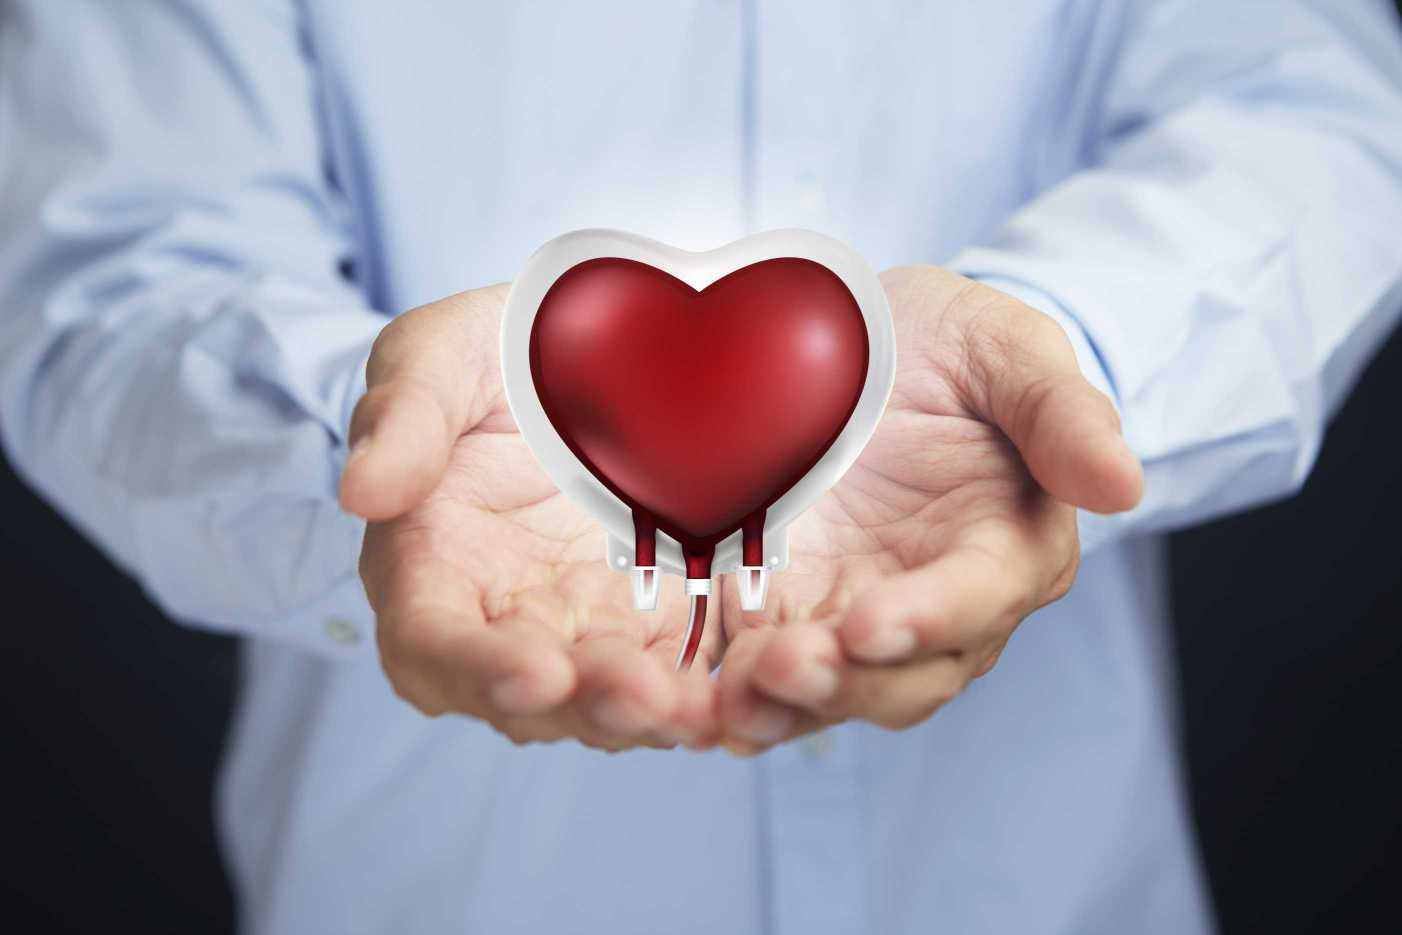 Benefits and side effects of donating blood